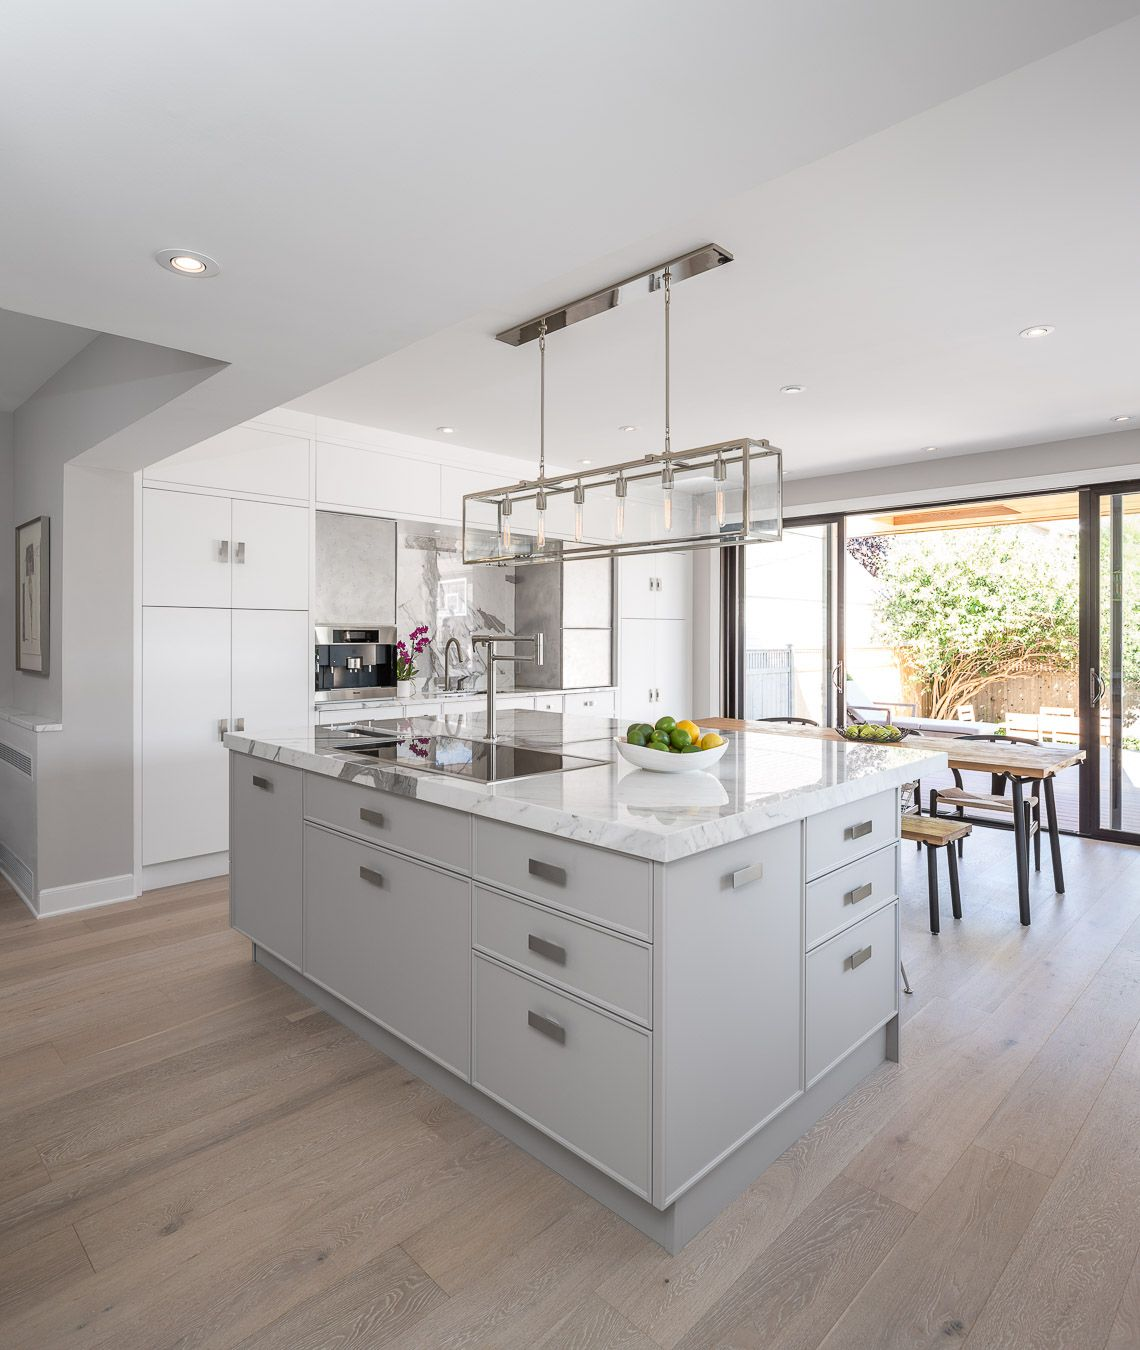 Kitchen And Bath Ideas: Featuring Our Visual Comfort & Co. Light Fixture. A White